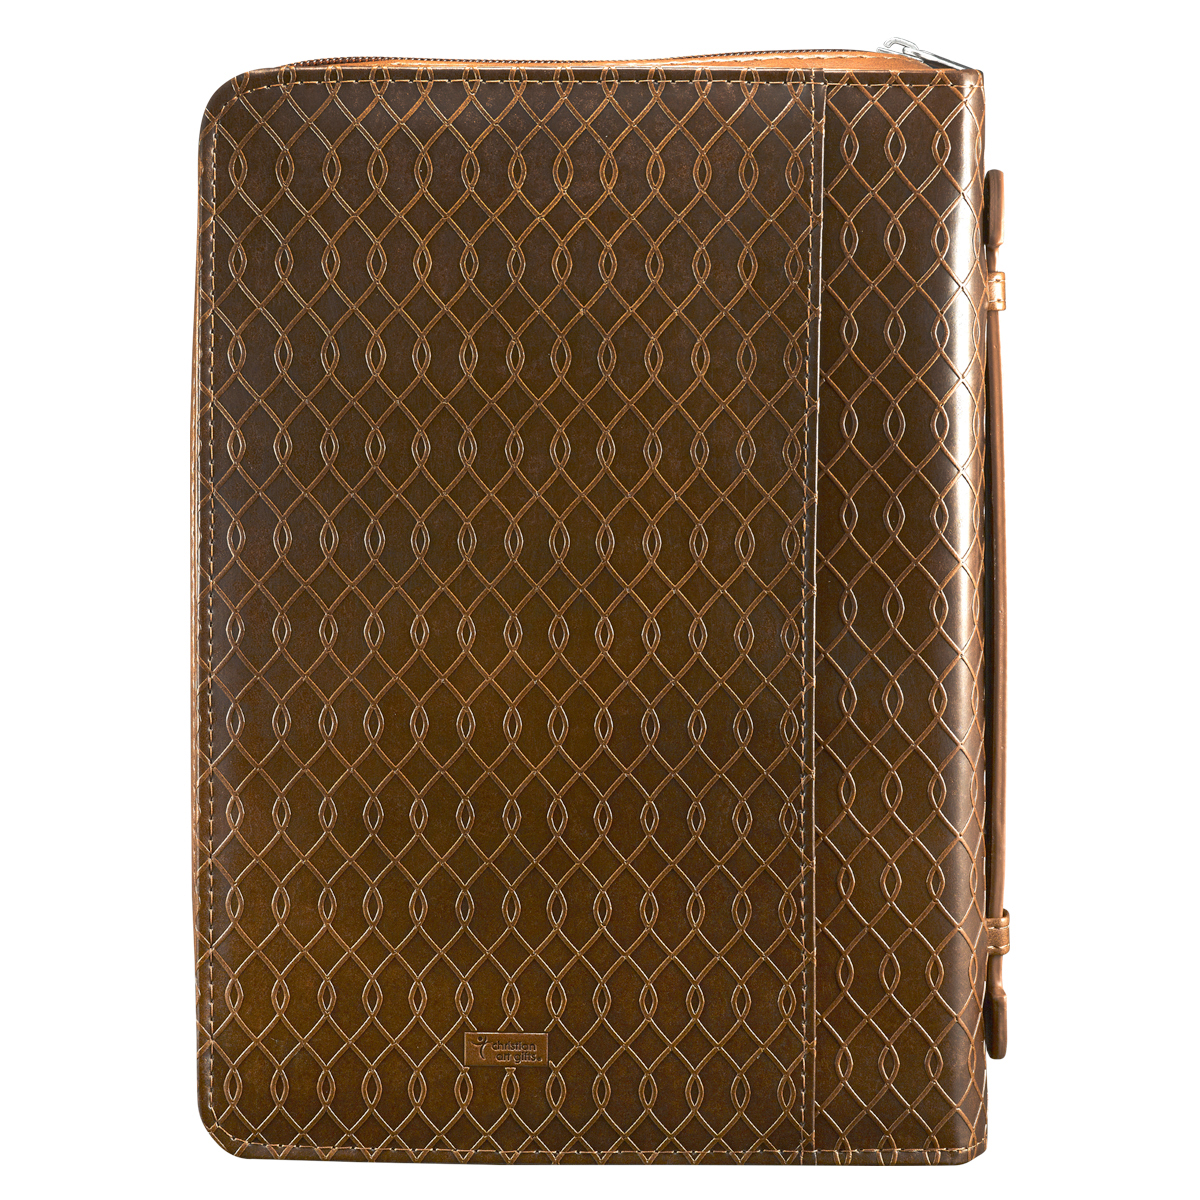 I-know-the-Plans-in-two-tone-Brown-Jeremiah-29-11-Bible-Cover-Size-Medium thumbnail 2